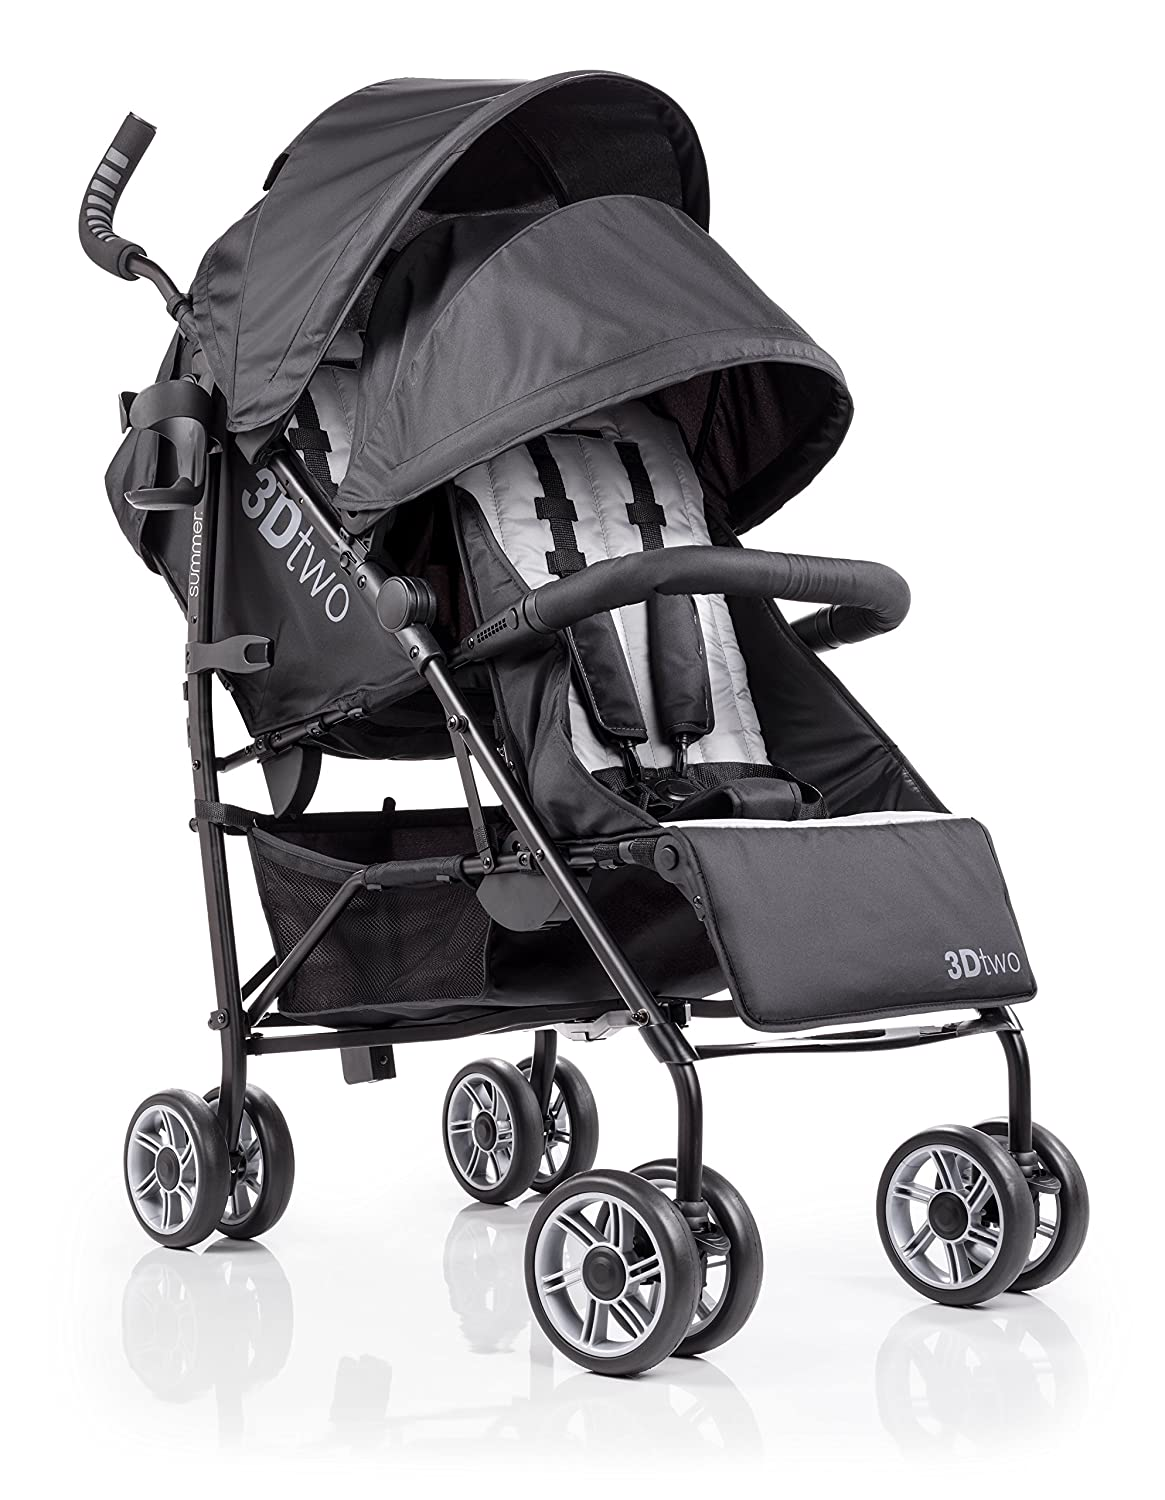 Top 7 Best Tandem Strollers Reviews in 2020 3